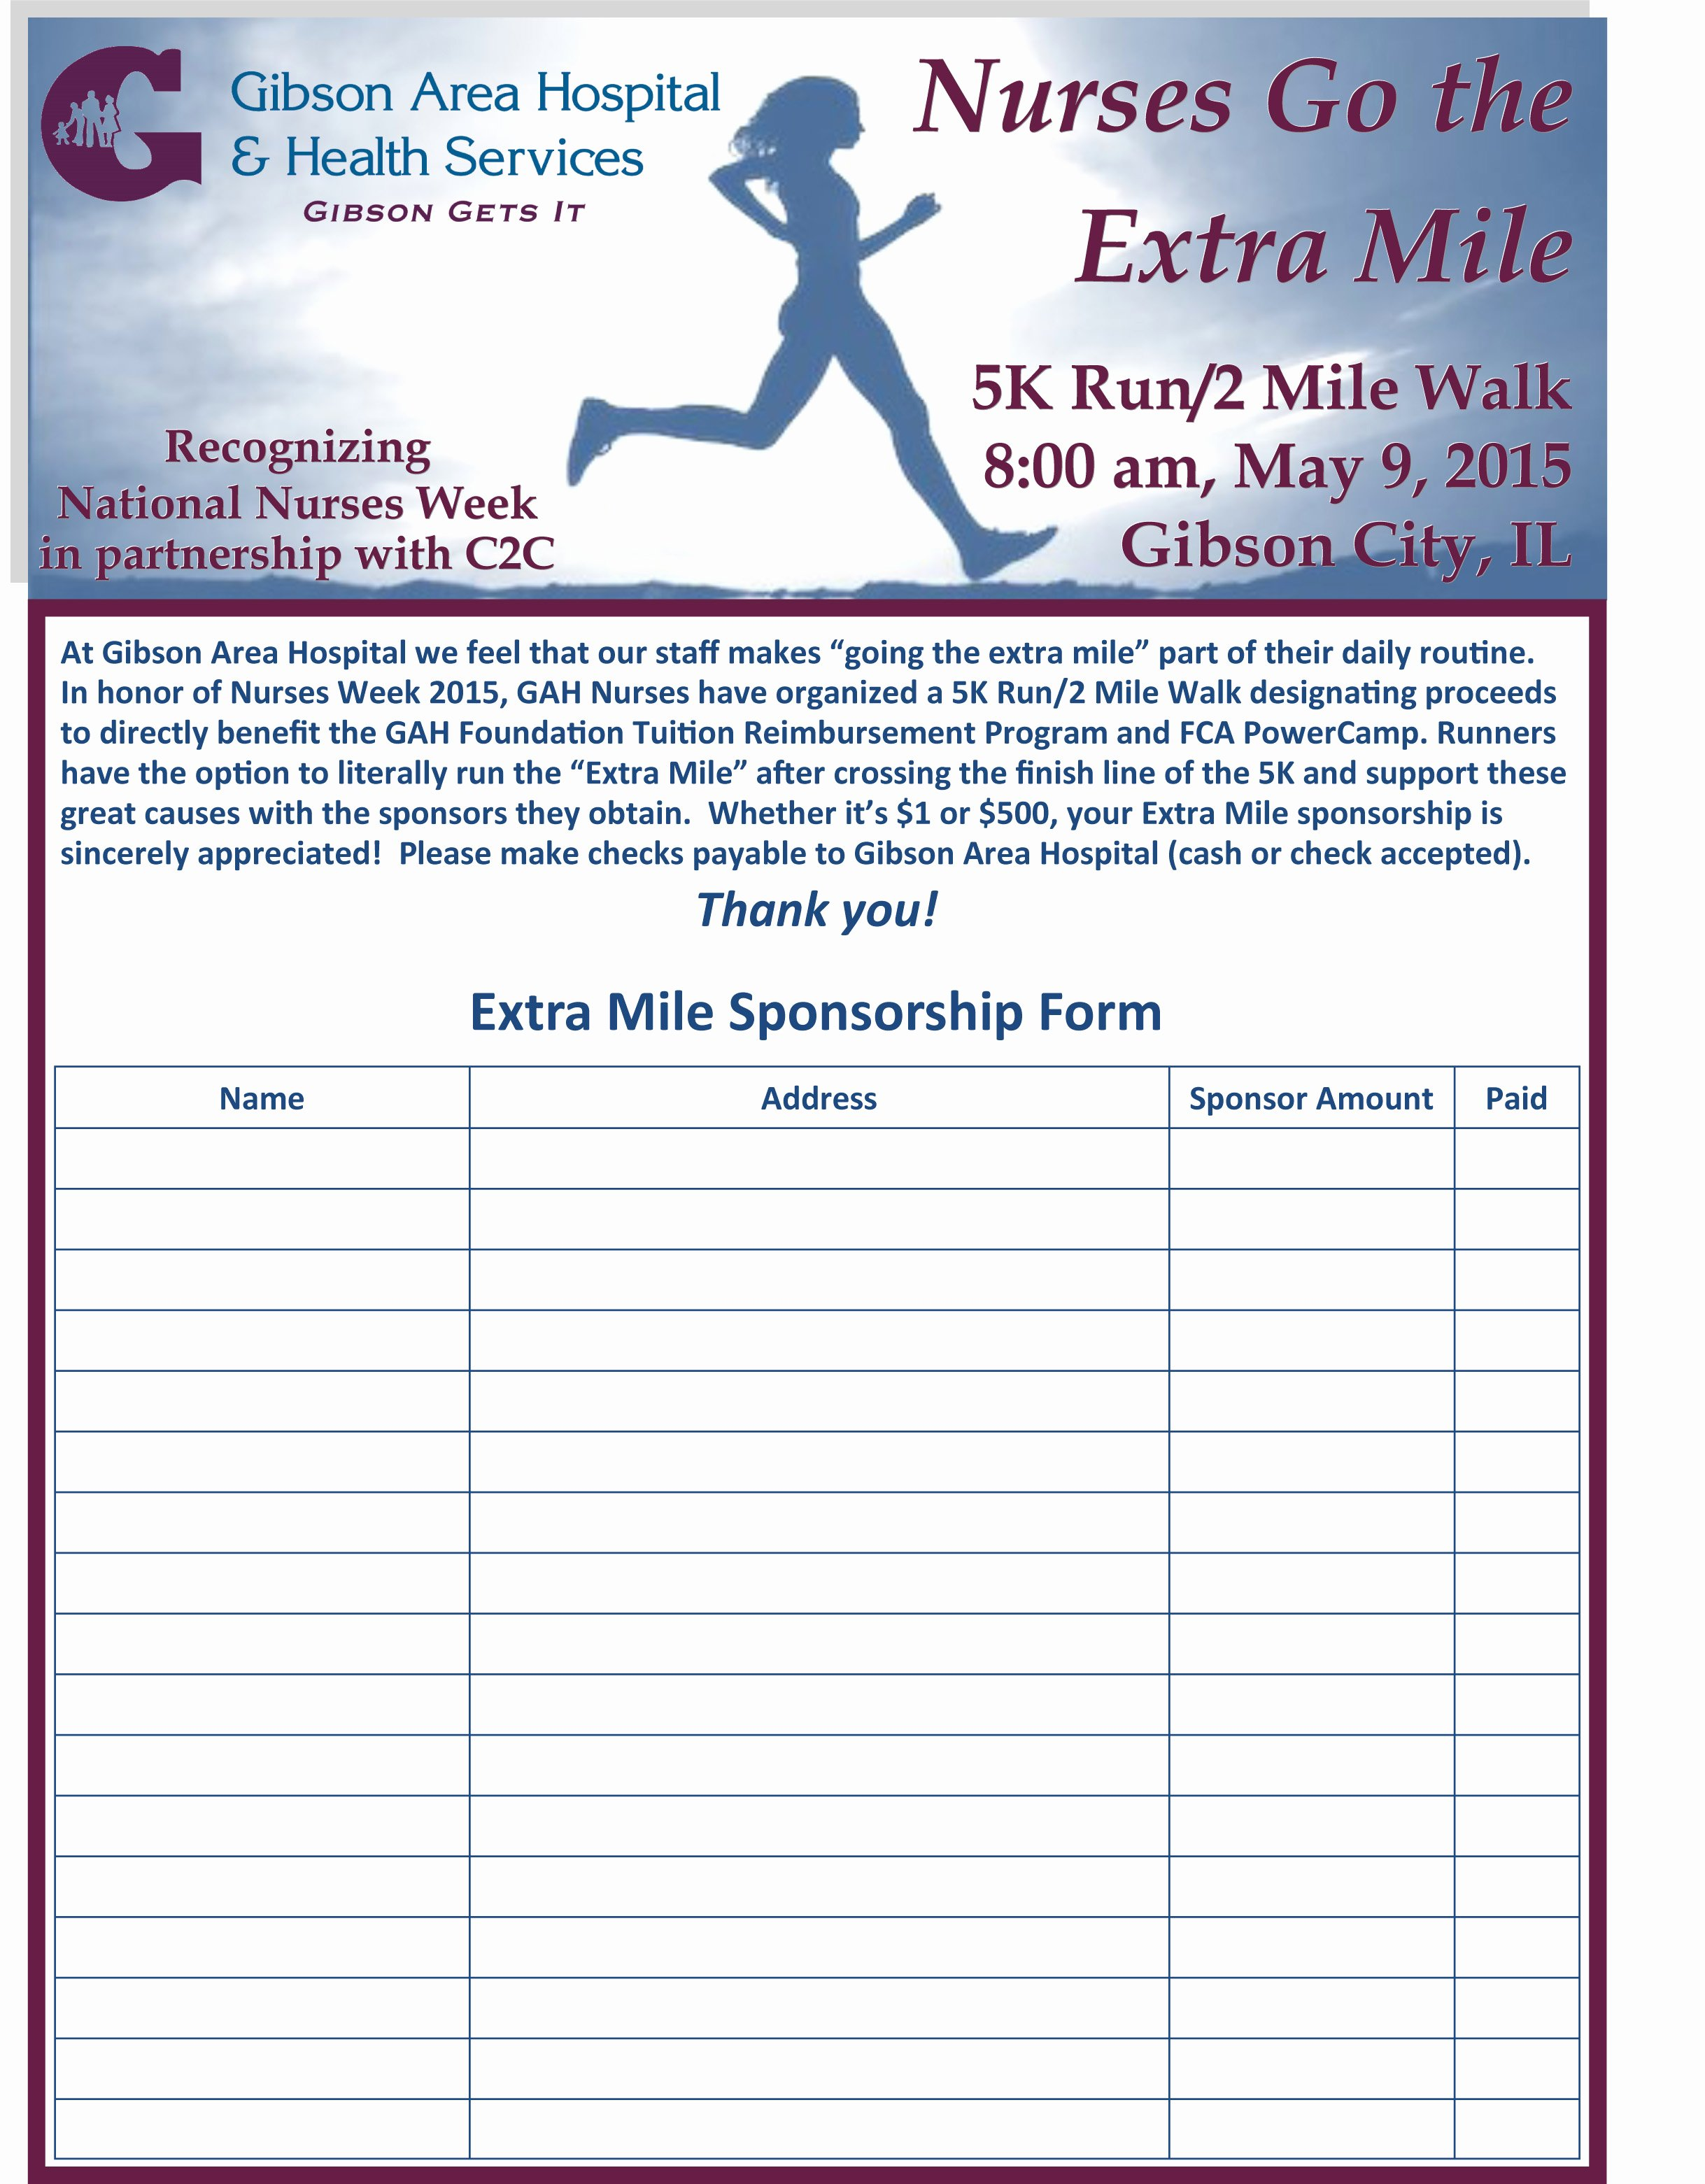 5k Registration form Template Best Of Gibson area Hospital